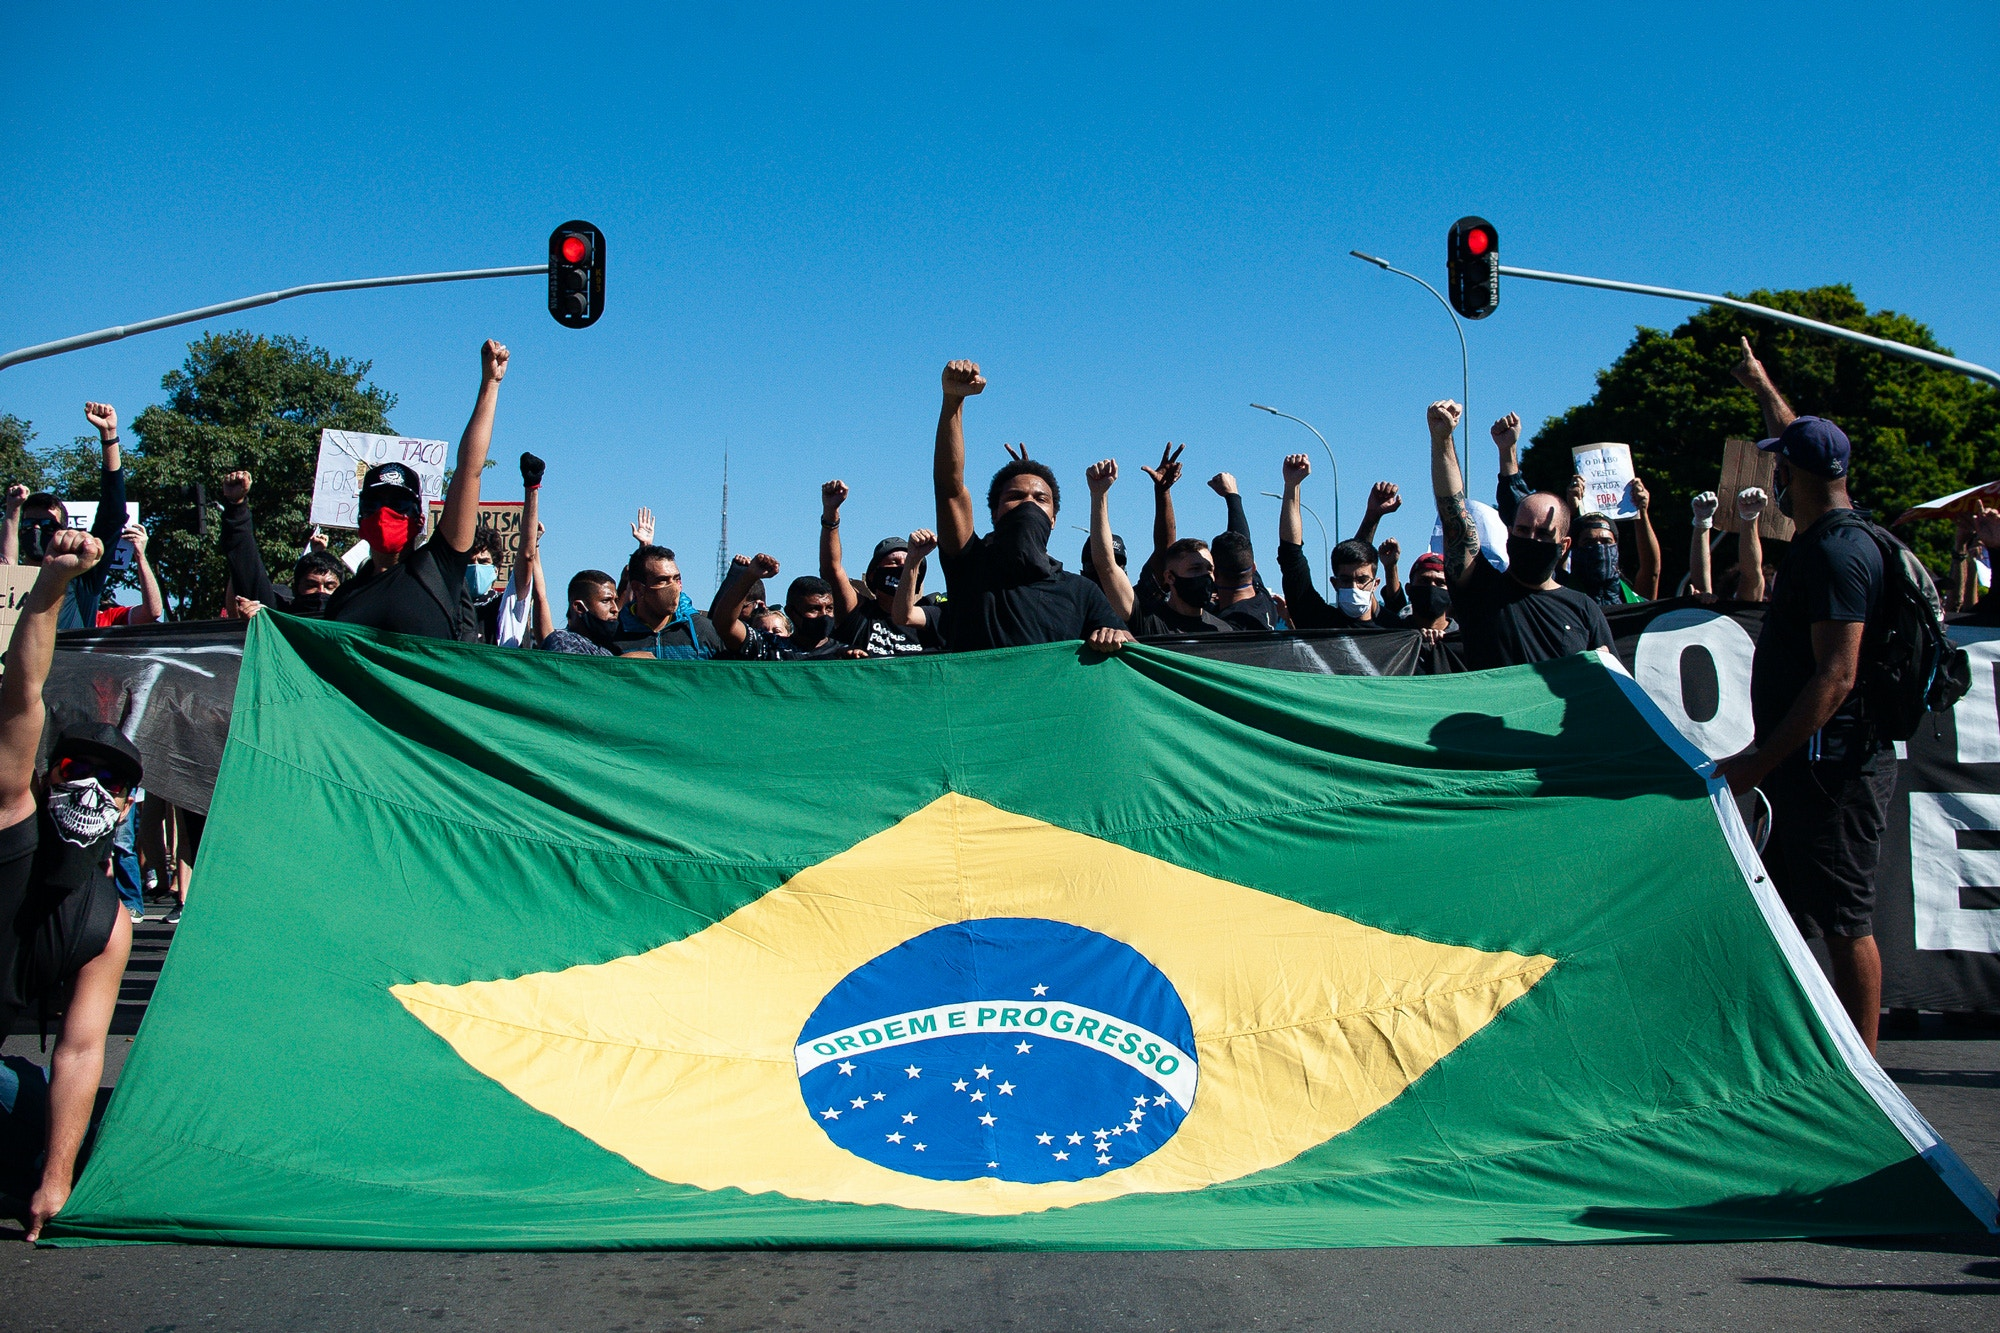 BRASILIA, BRAZIL - JUNE 07: People attend an anti-racist protest condemning the government of President Jair Bolsonaro amidst the coronavirus (COVID-19) pandemic at the Esplanada dos Ministérios on June 07, 2020 in Brasilia, Brazil. The country has over 672,000 confirmed positive cases of Coronavirus and 35,930 deaths. (Photo by Andressa Anholete/Getty Images)